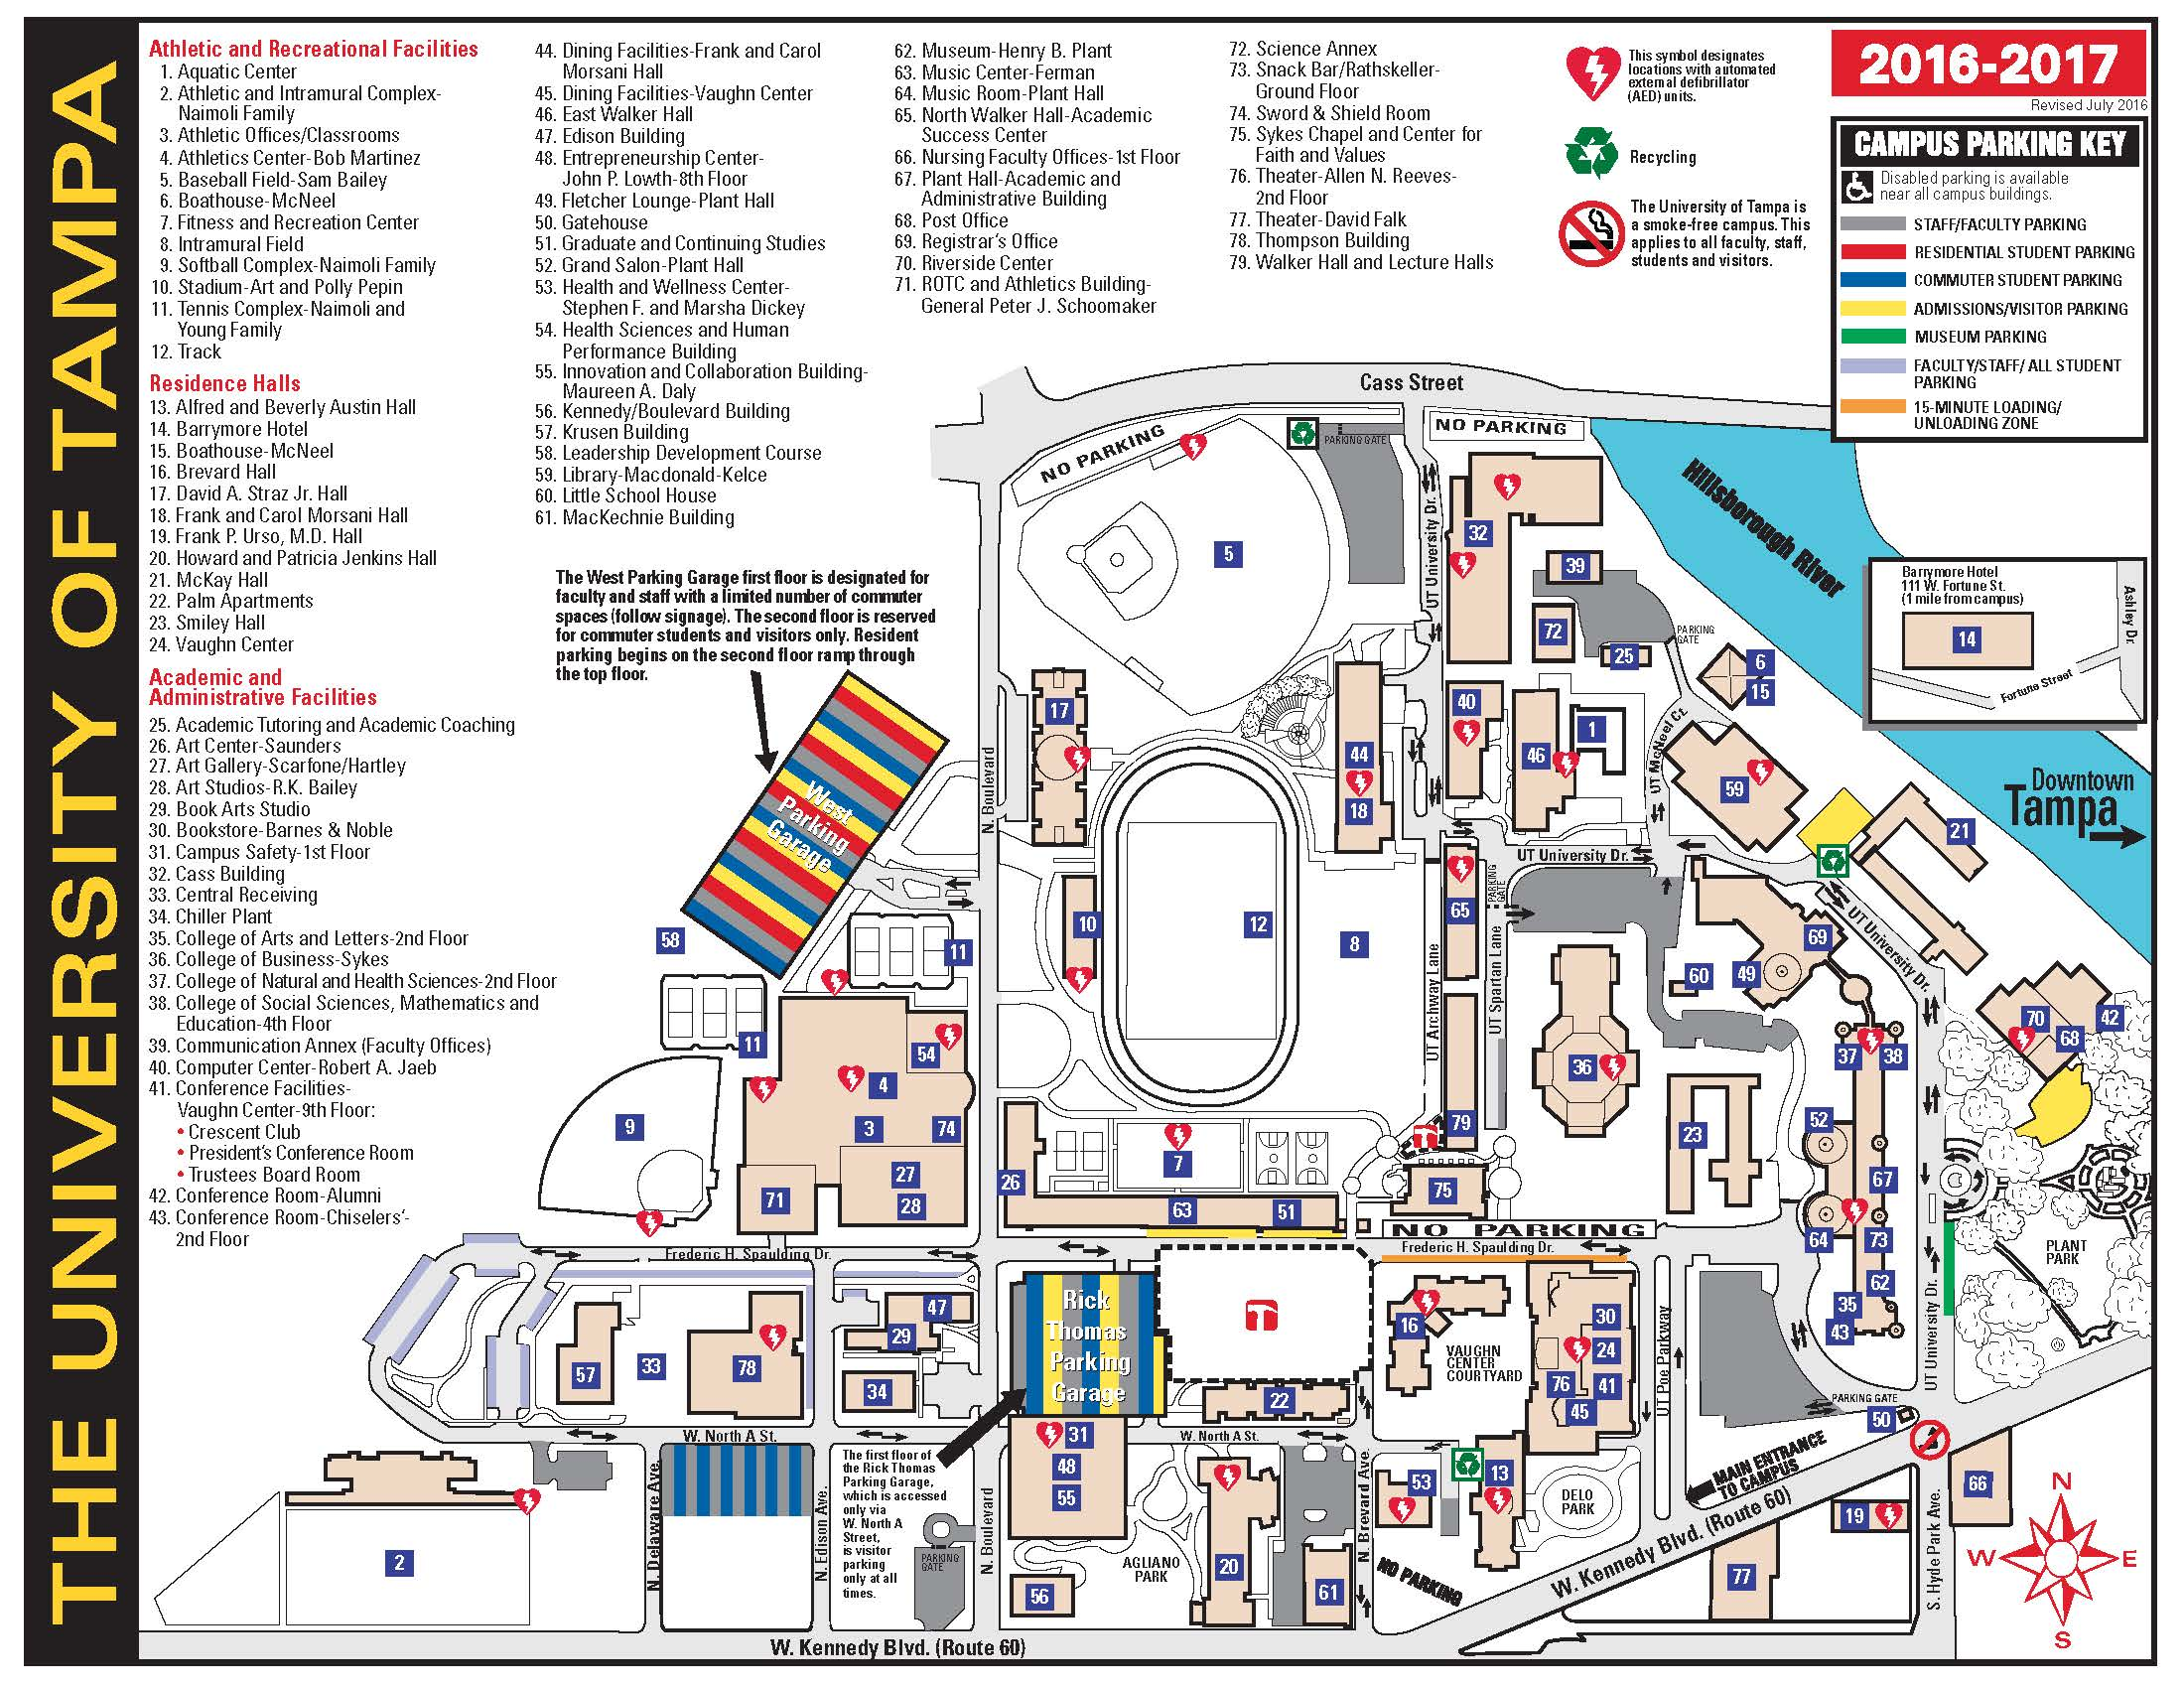 touch a campus locator map with